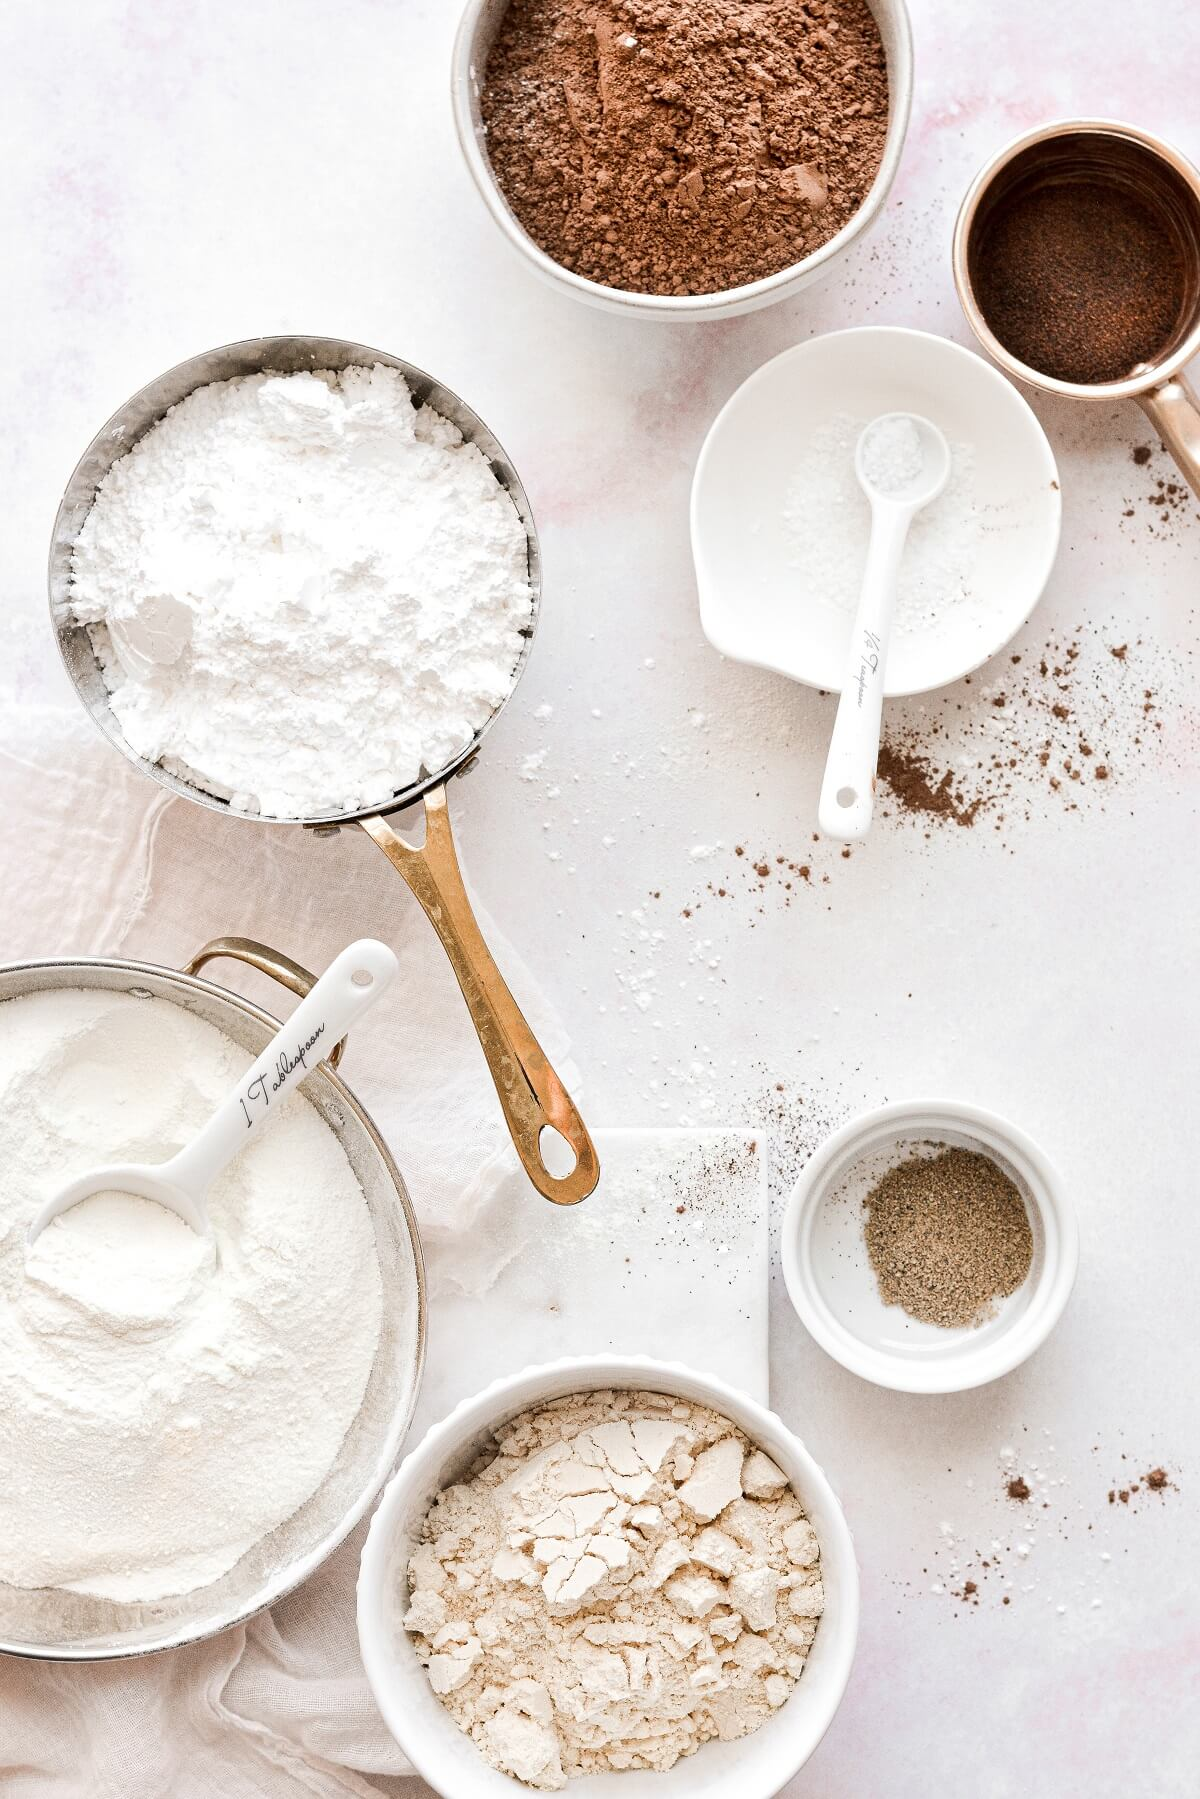 Ingredients for homemade hot chocolate mix.